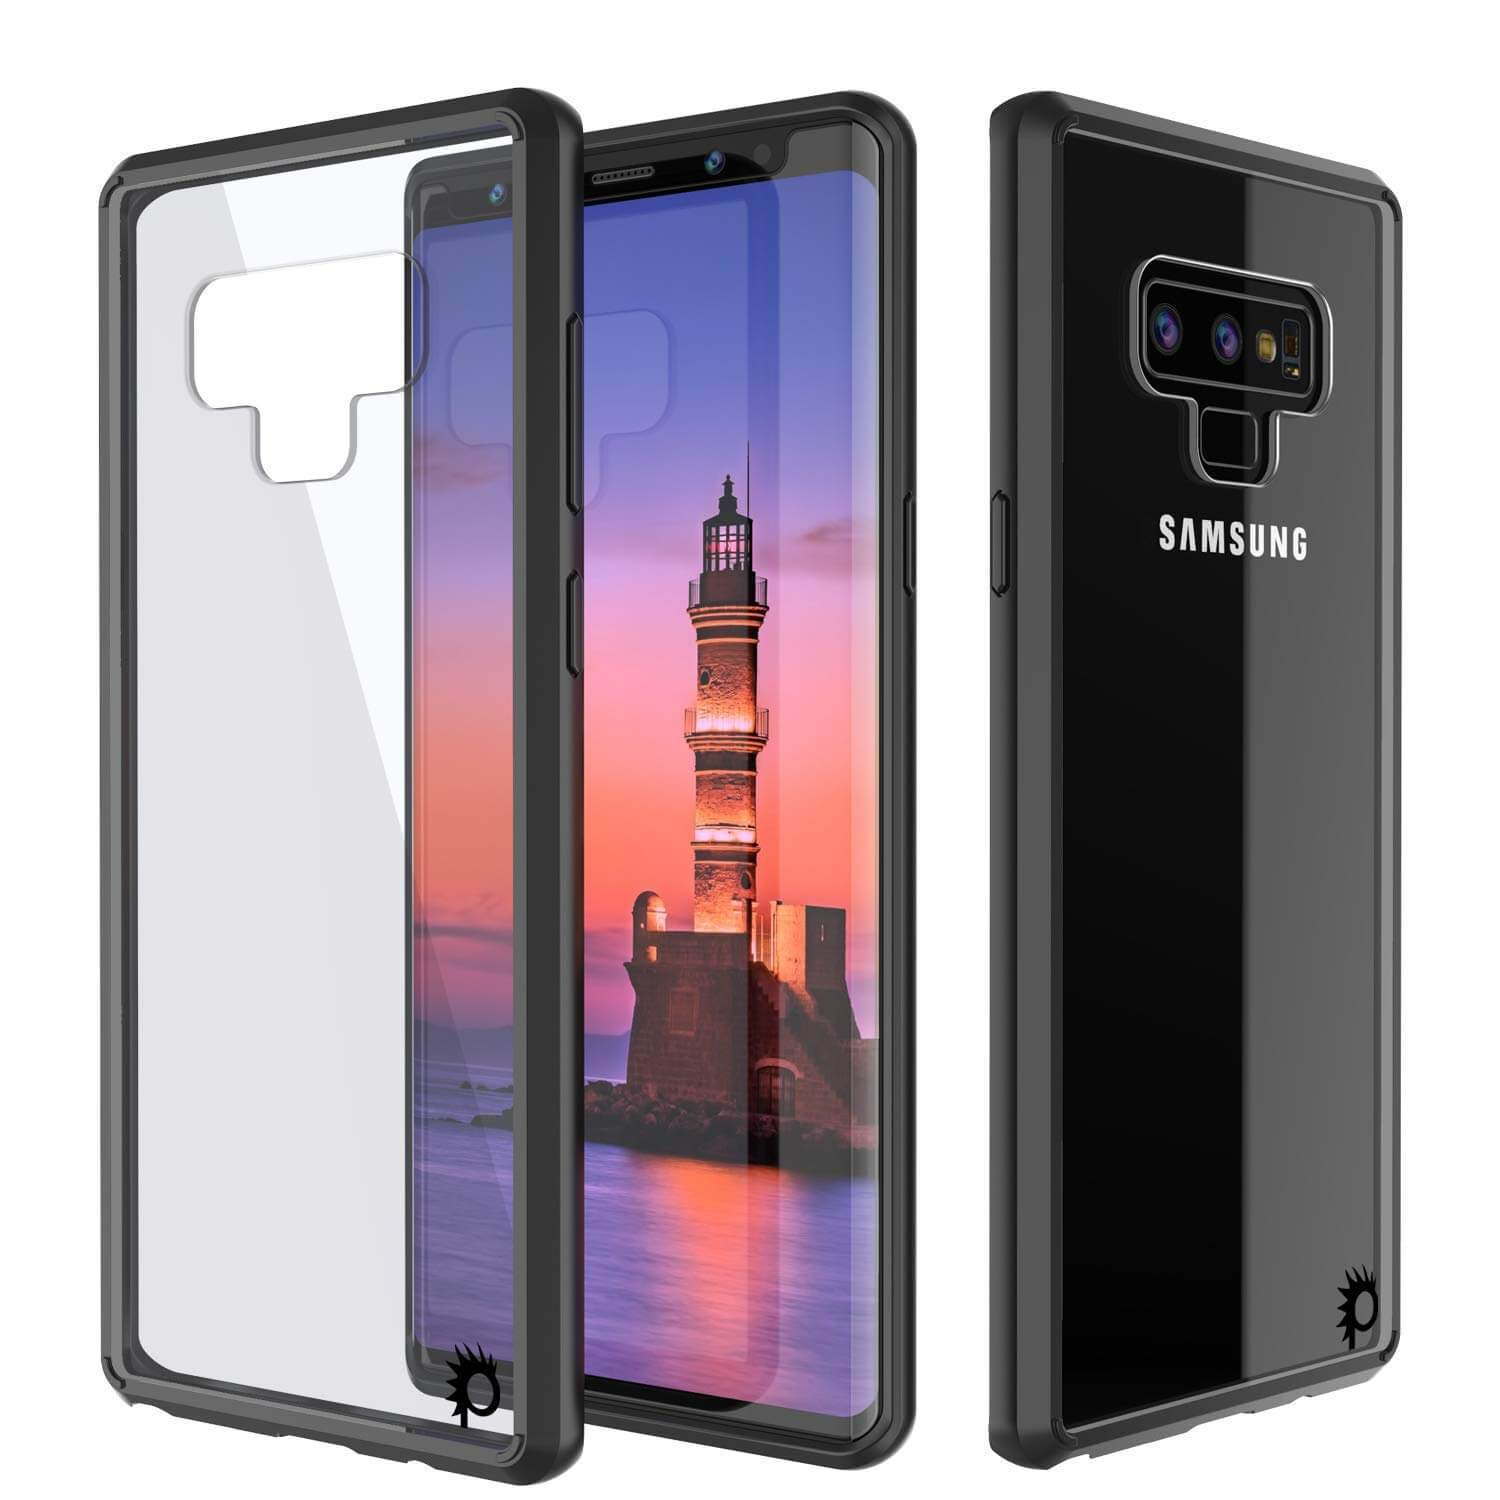 Galaxy Note 9 Case, PUNKcase [LUCID 2.0 Series] [Slim Fit] Armor Cover W/Integrated Anti-Shock System [Black]